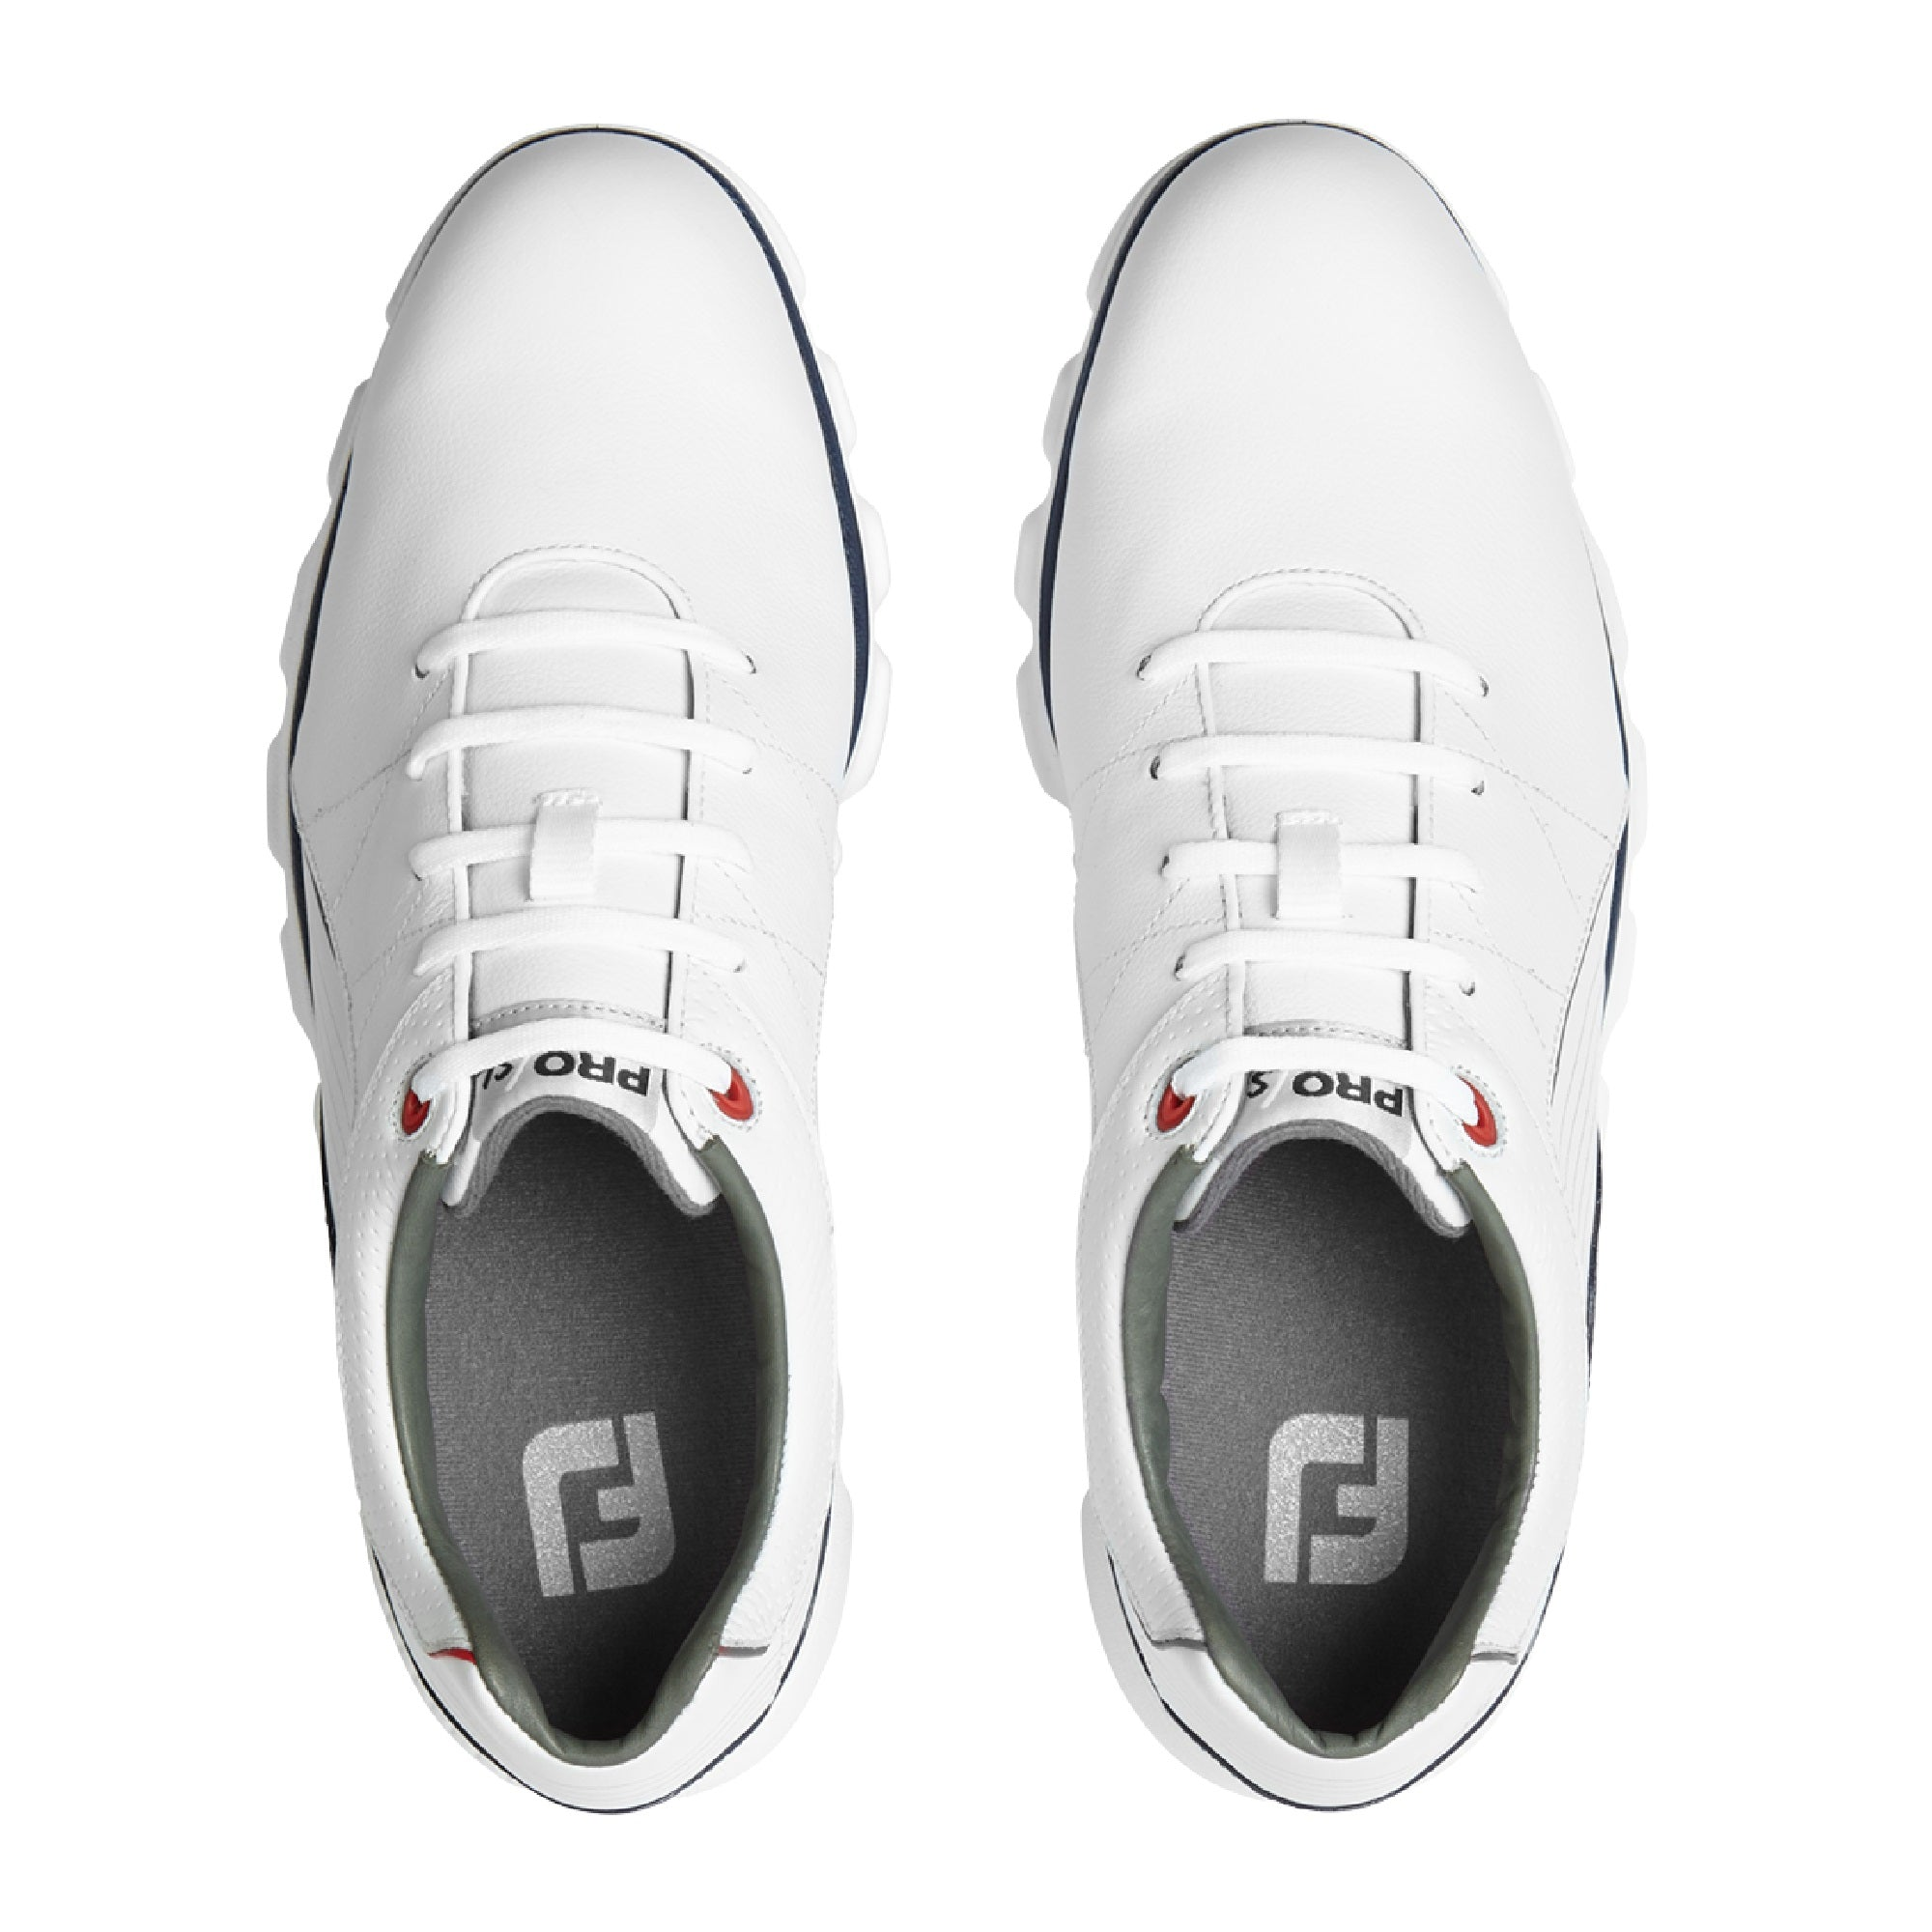 FootJoy Pro SL Golf Shoe 53269